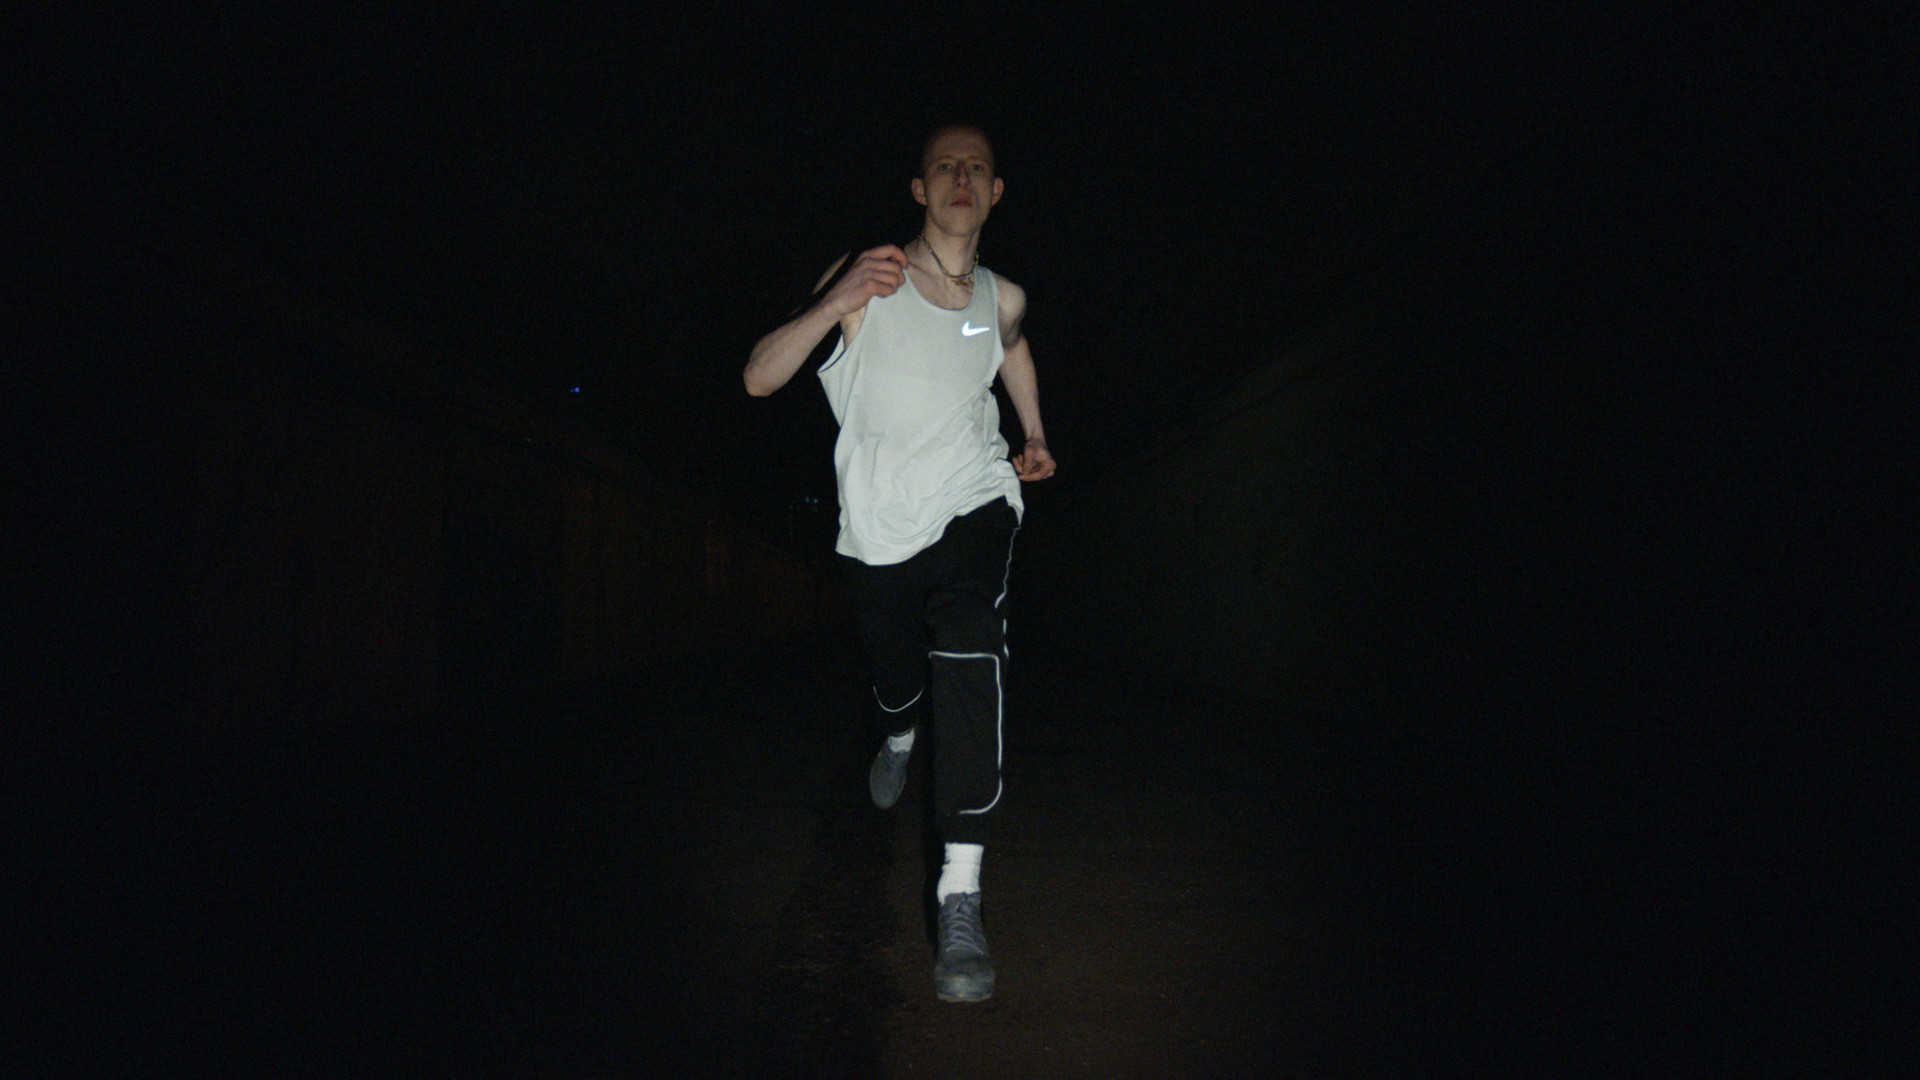 Nike - Everything Starts With A Run __ Sever-0653